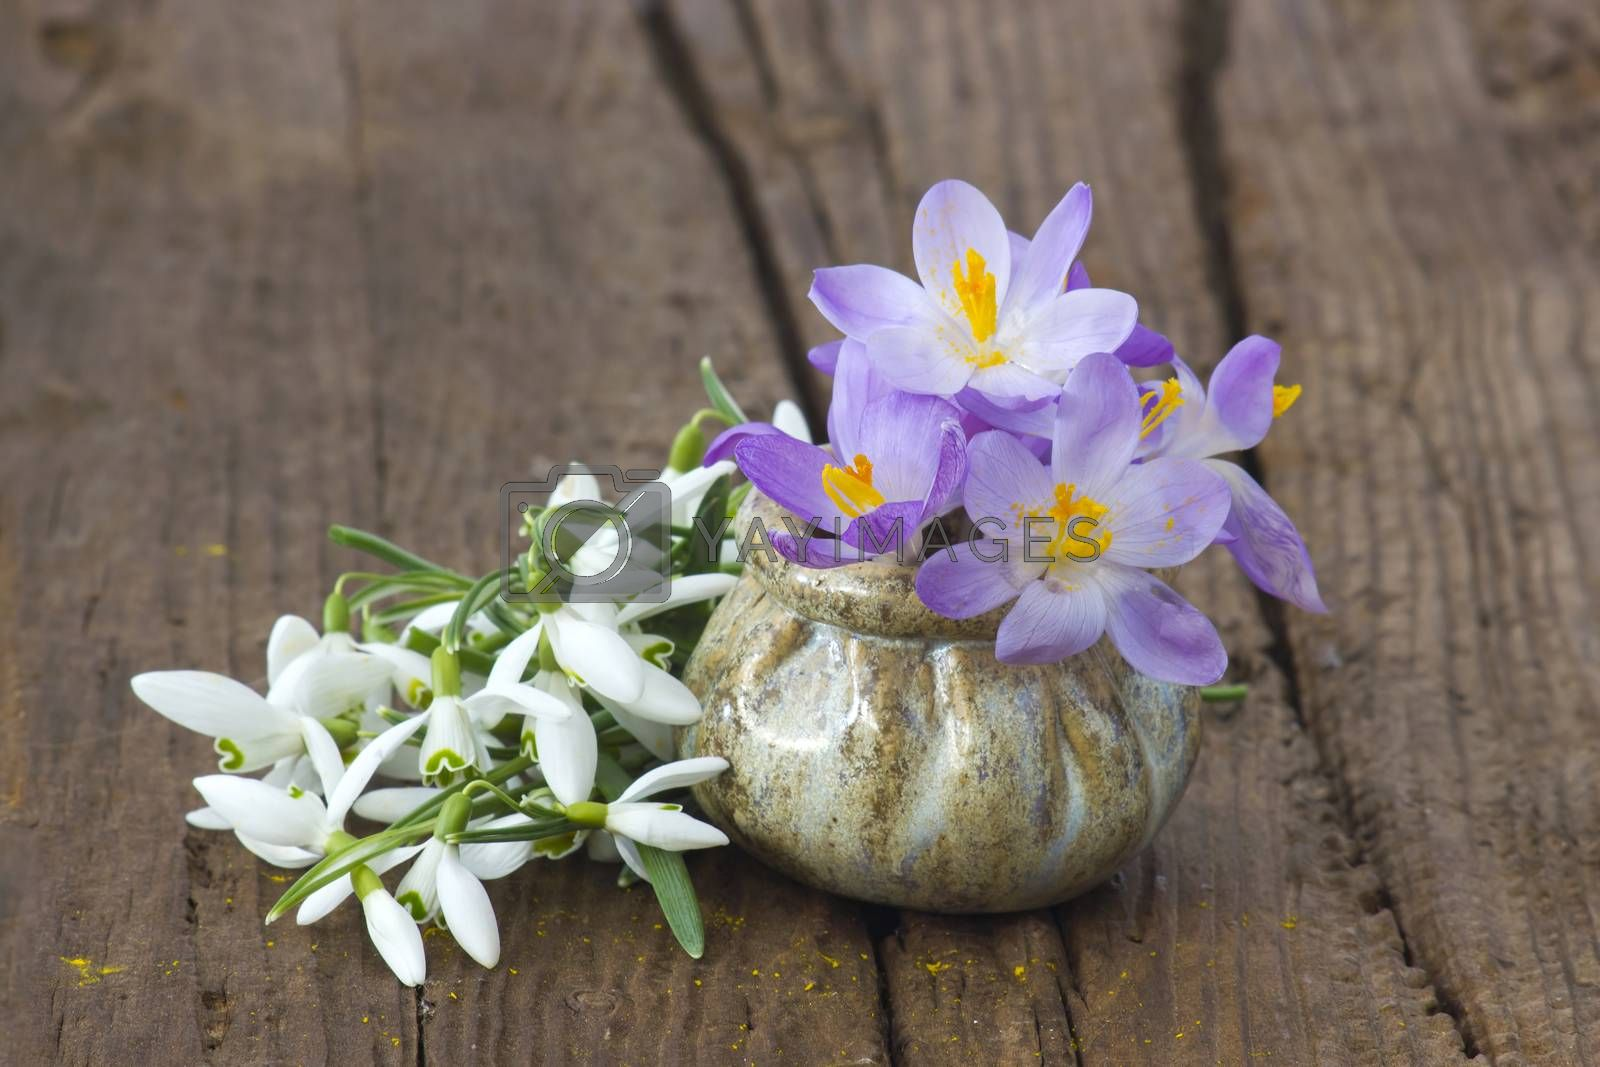 Royalty free image of  crocus and snowdrops on the wooden table by miradrozdowski